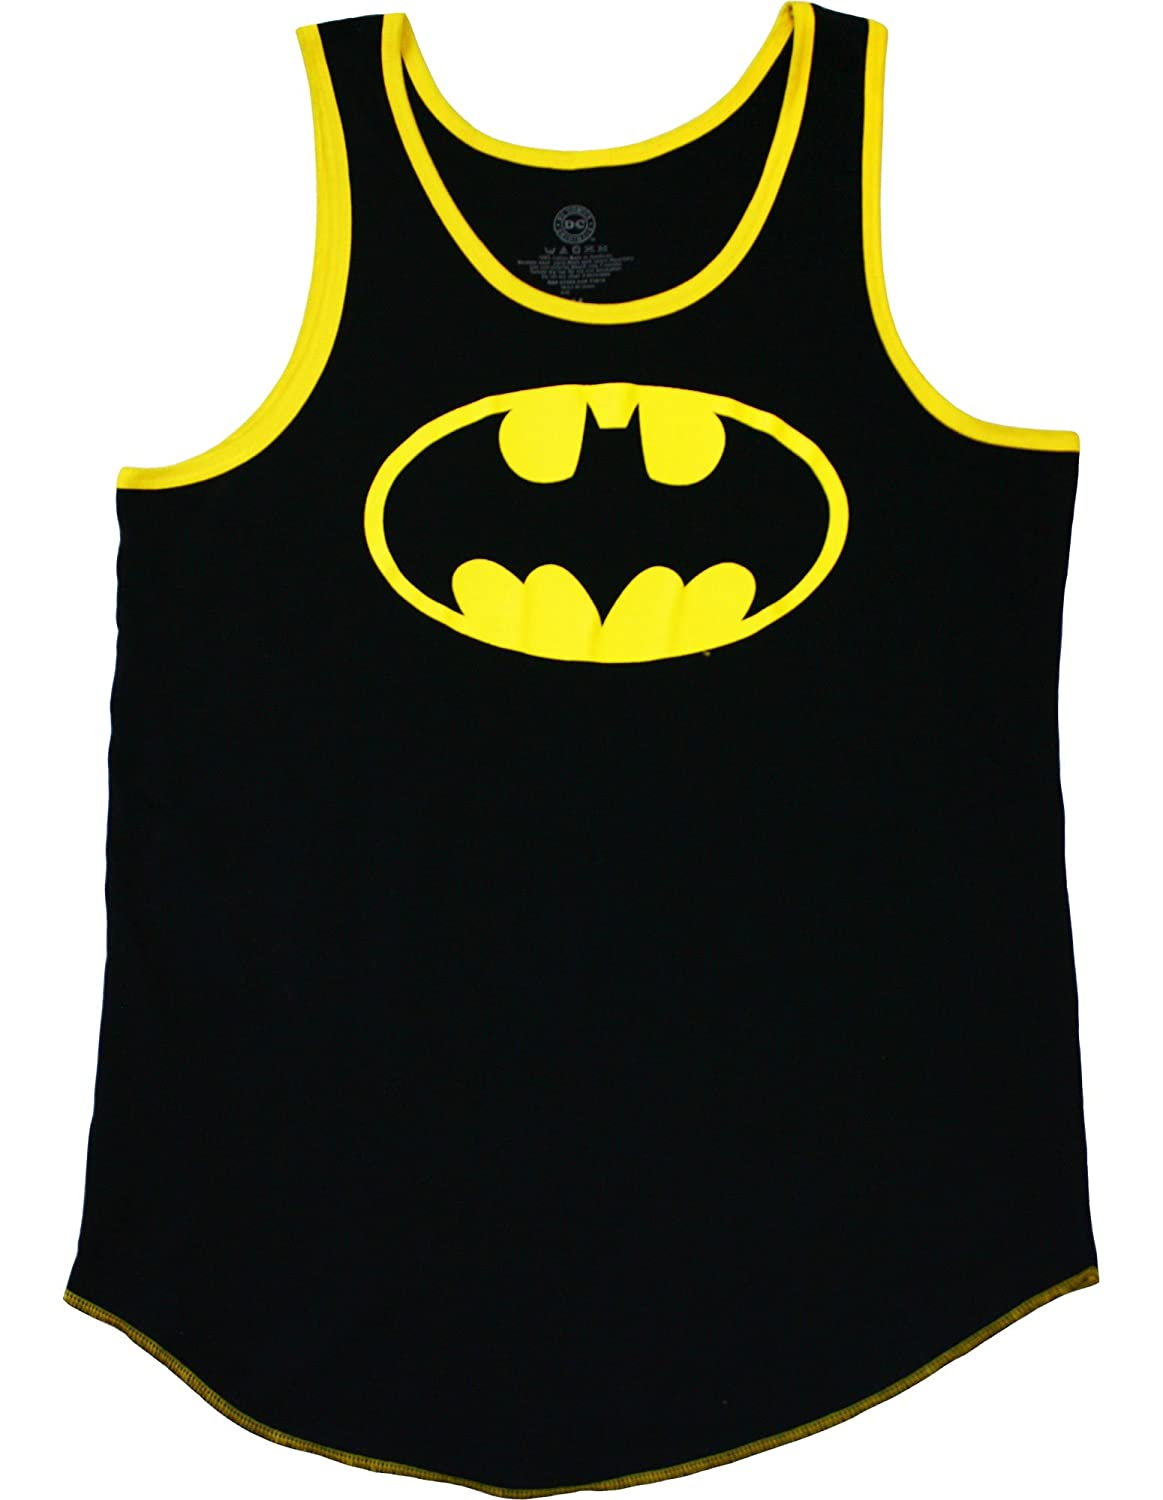 Changes DC Comics Batman Logo Tank Top 48-530-846